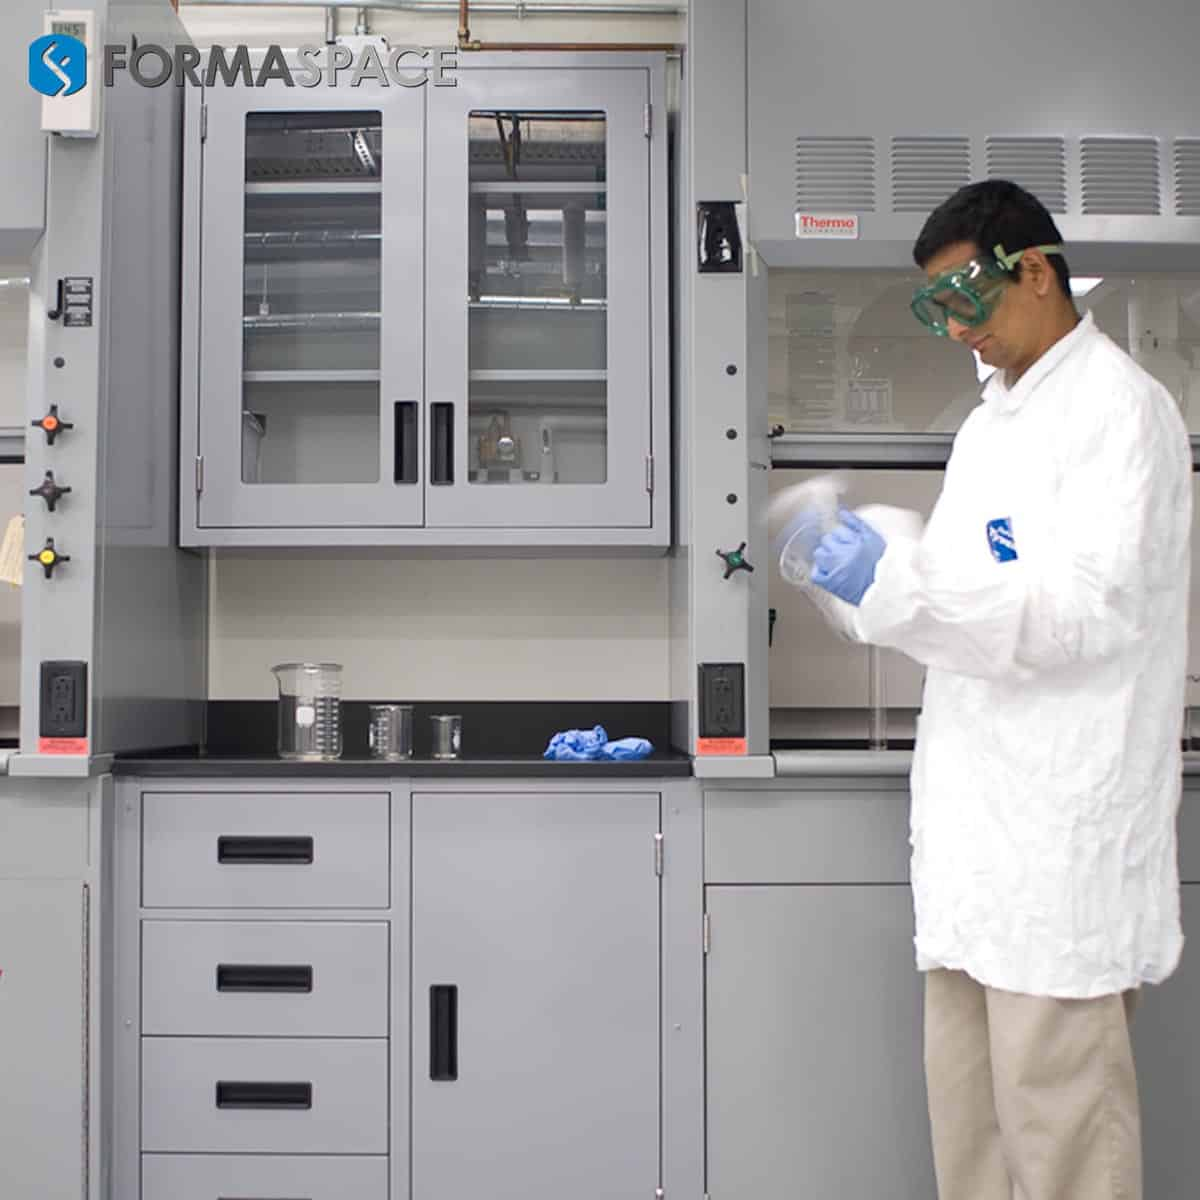 sample processing casework with fumehood